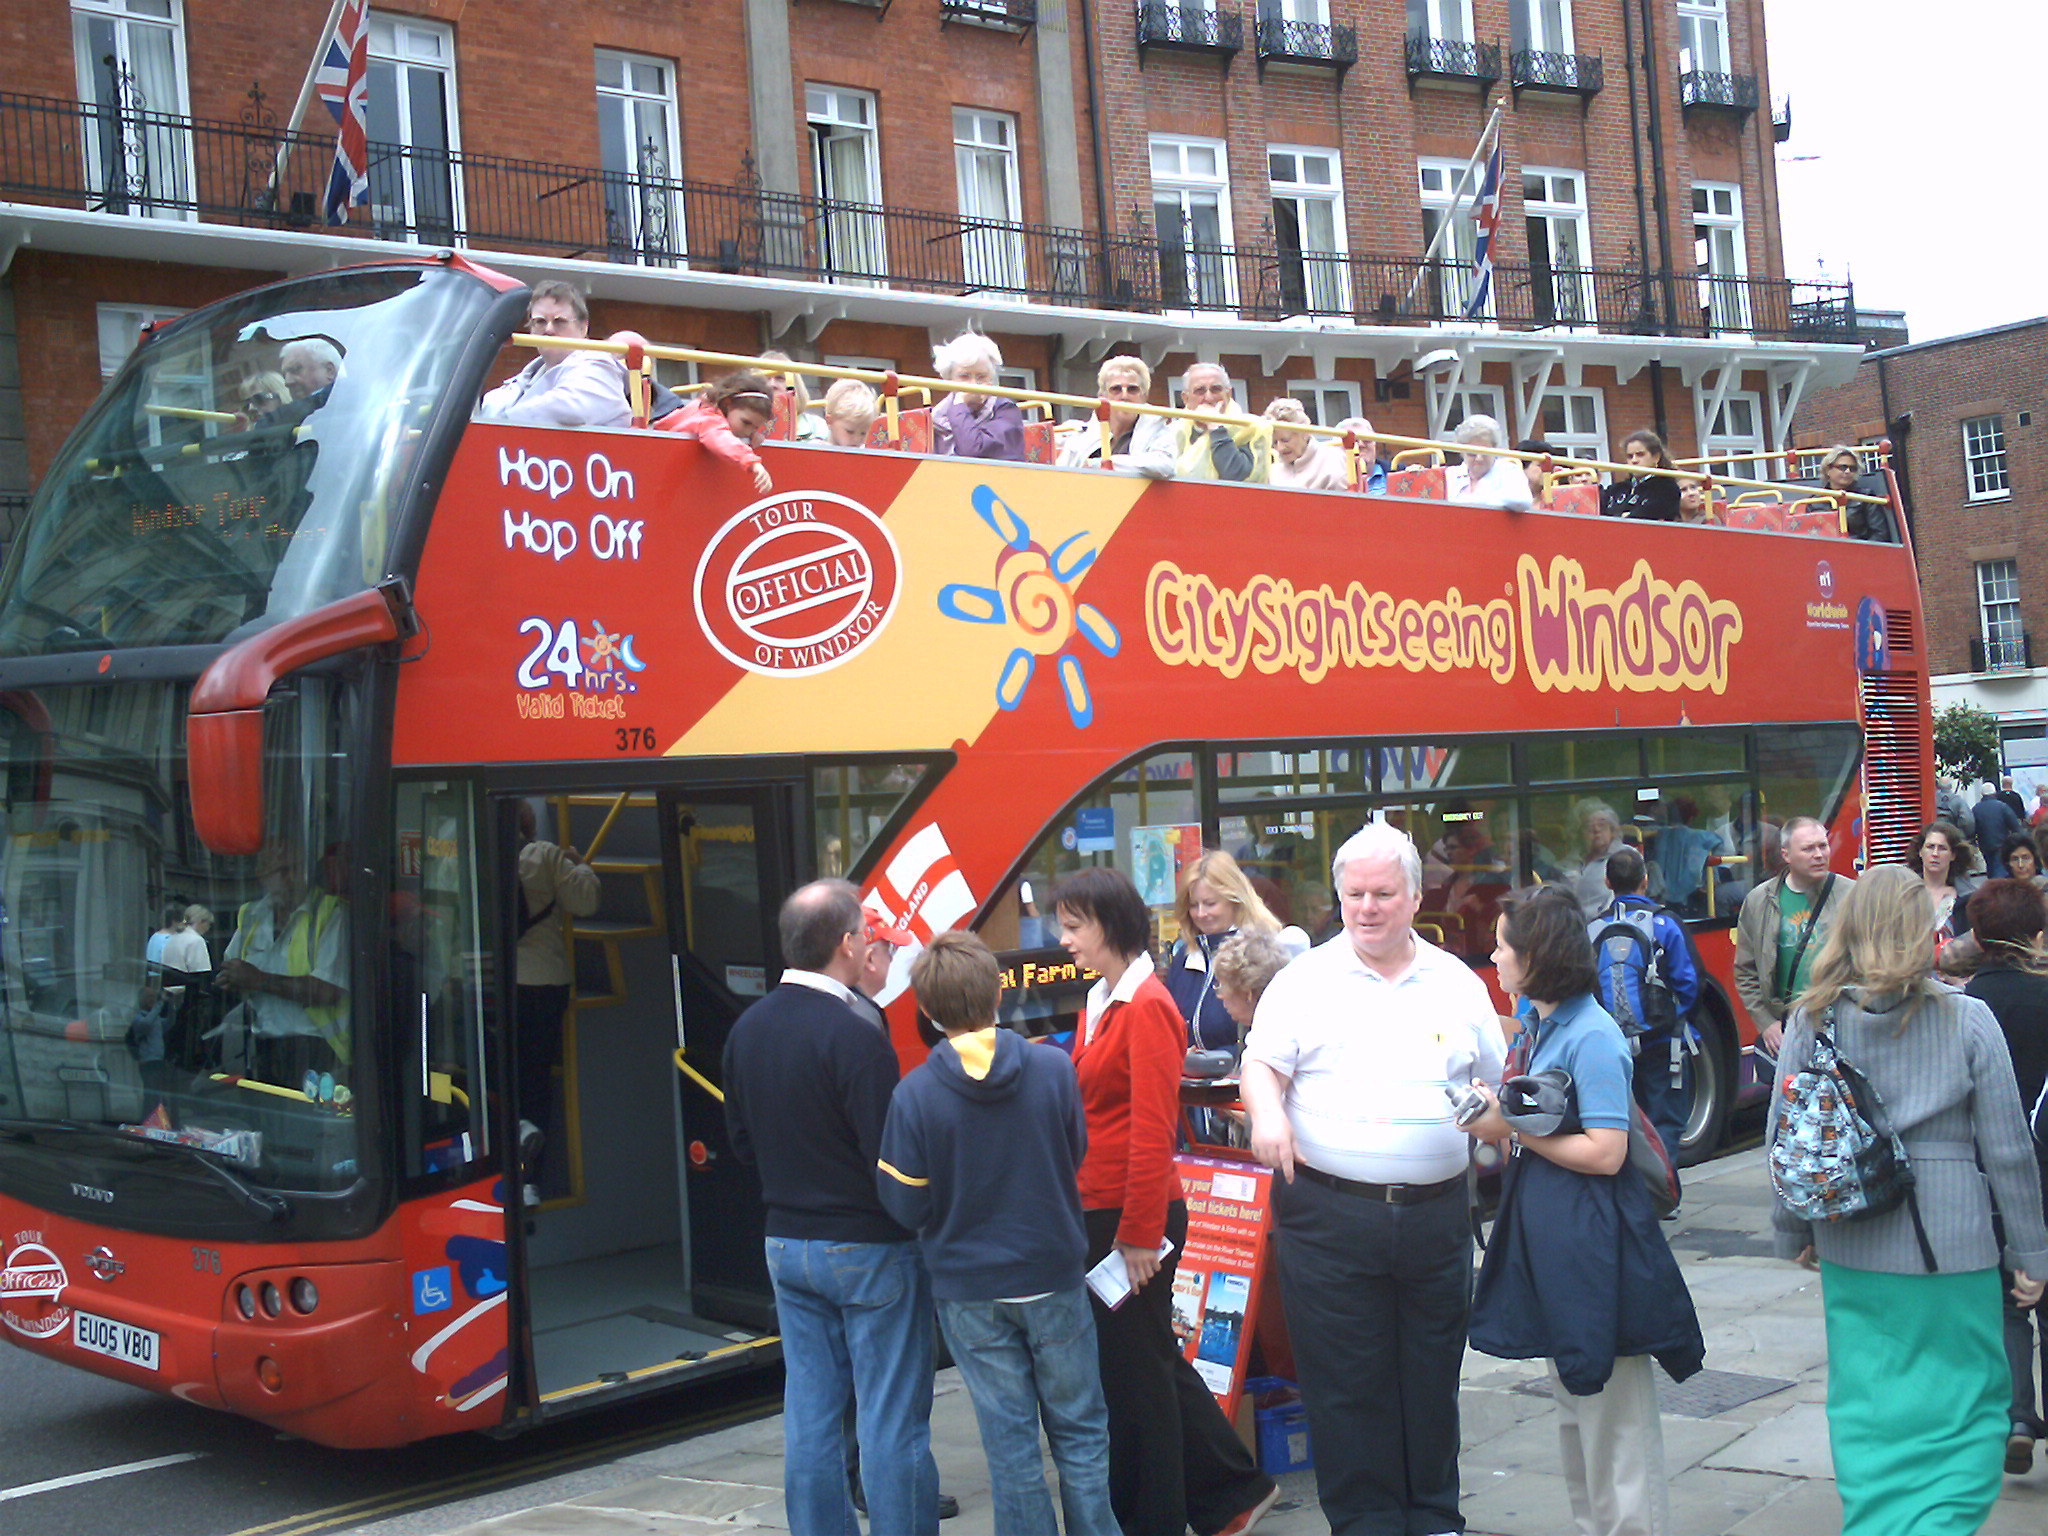 City Sightseeing © windsor.gov.uk